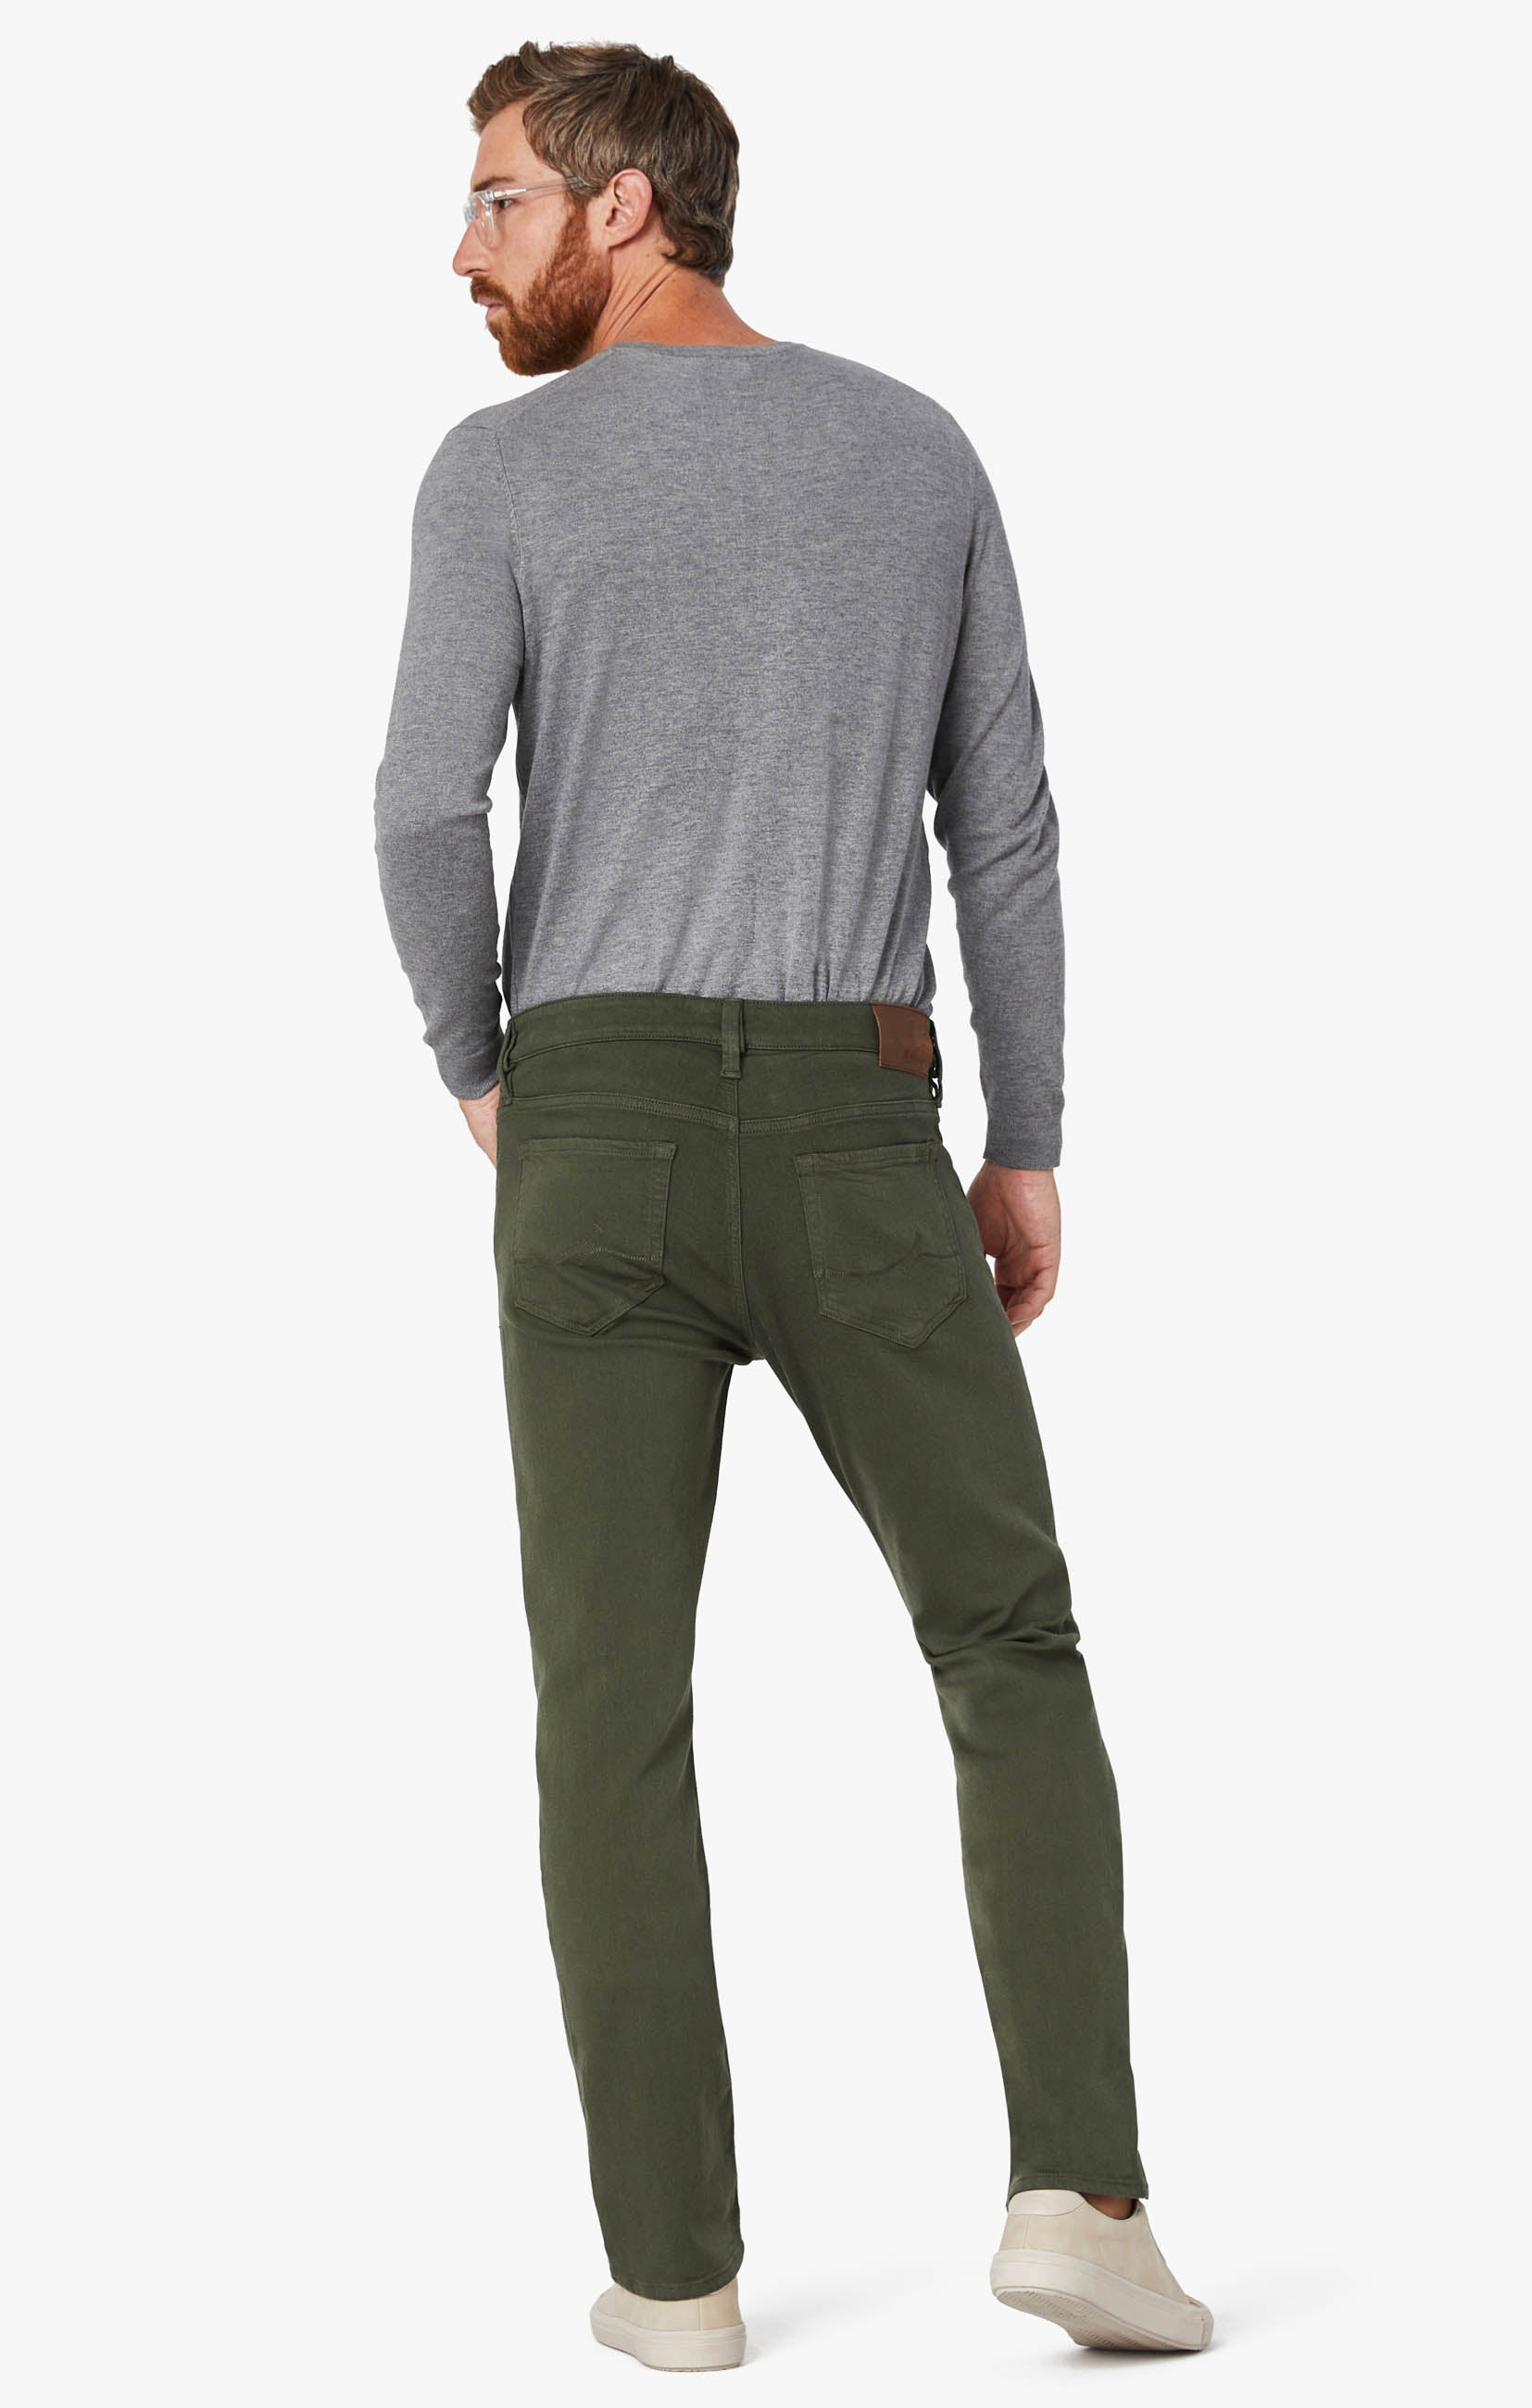 Courage Straight Leg Pants In Military Green Comfort Image 1